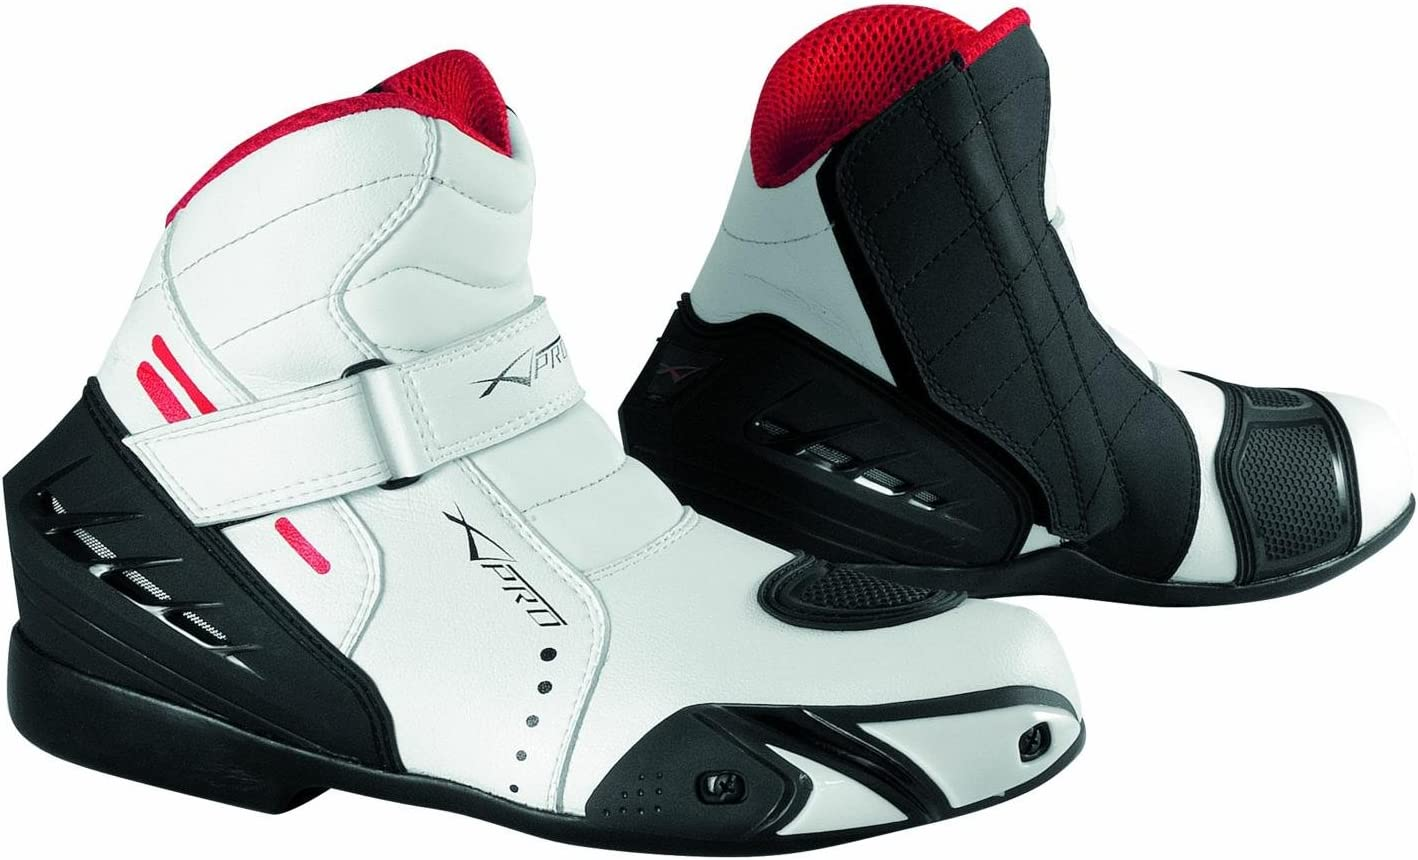 Motorcycle 5% OFF Biker Ventilated Race Touring Leather Sport Super beauty product restock quality top Boots A-P